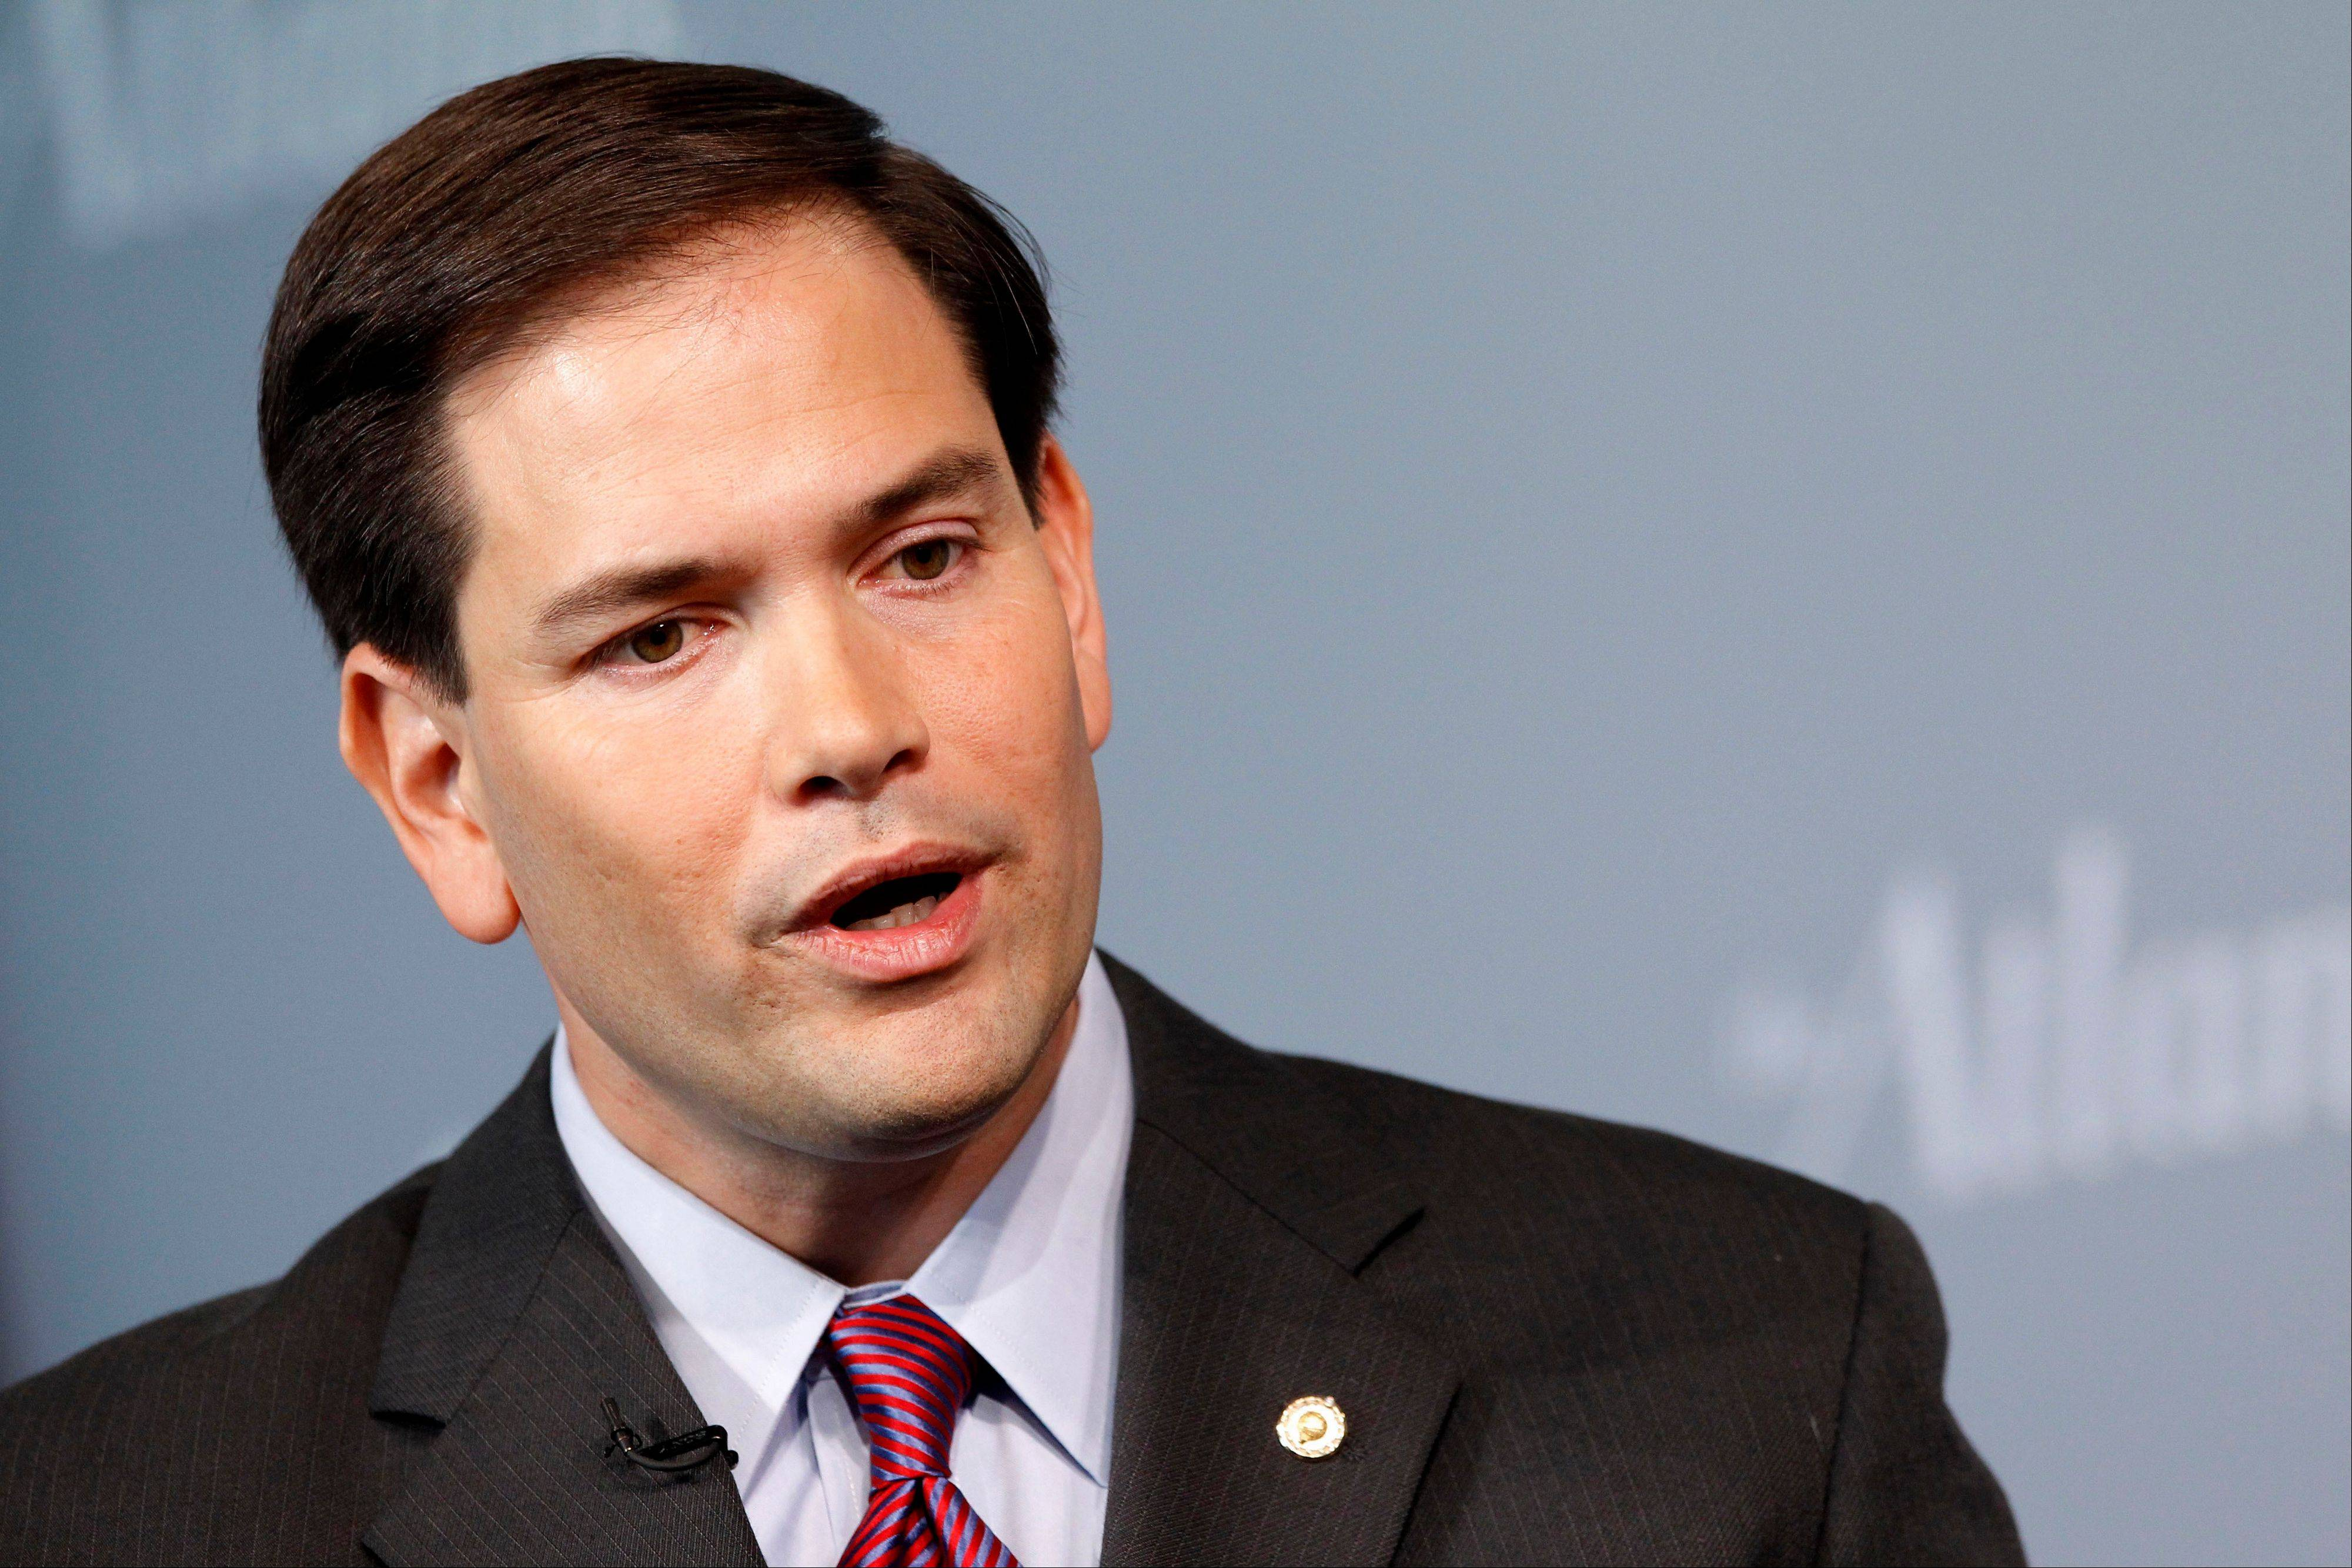 Of the automatic spending cuts that will kick in today, Tea Party favorite Sen. Marco Rubio, a Florida Republican, said �I think it�s a crazy idea. The only thing crazier than sequester is to walk away from the cuts that it guarantees.�